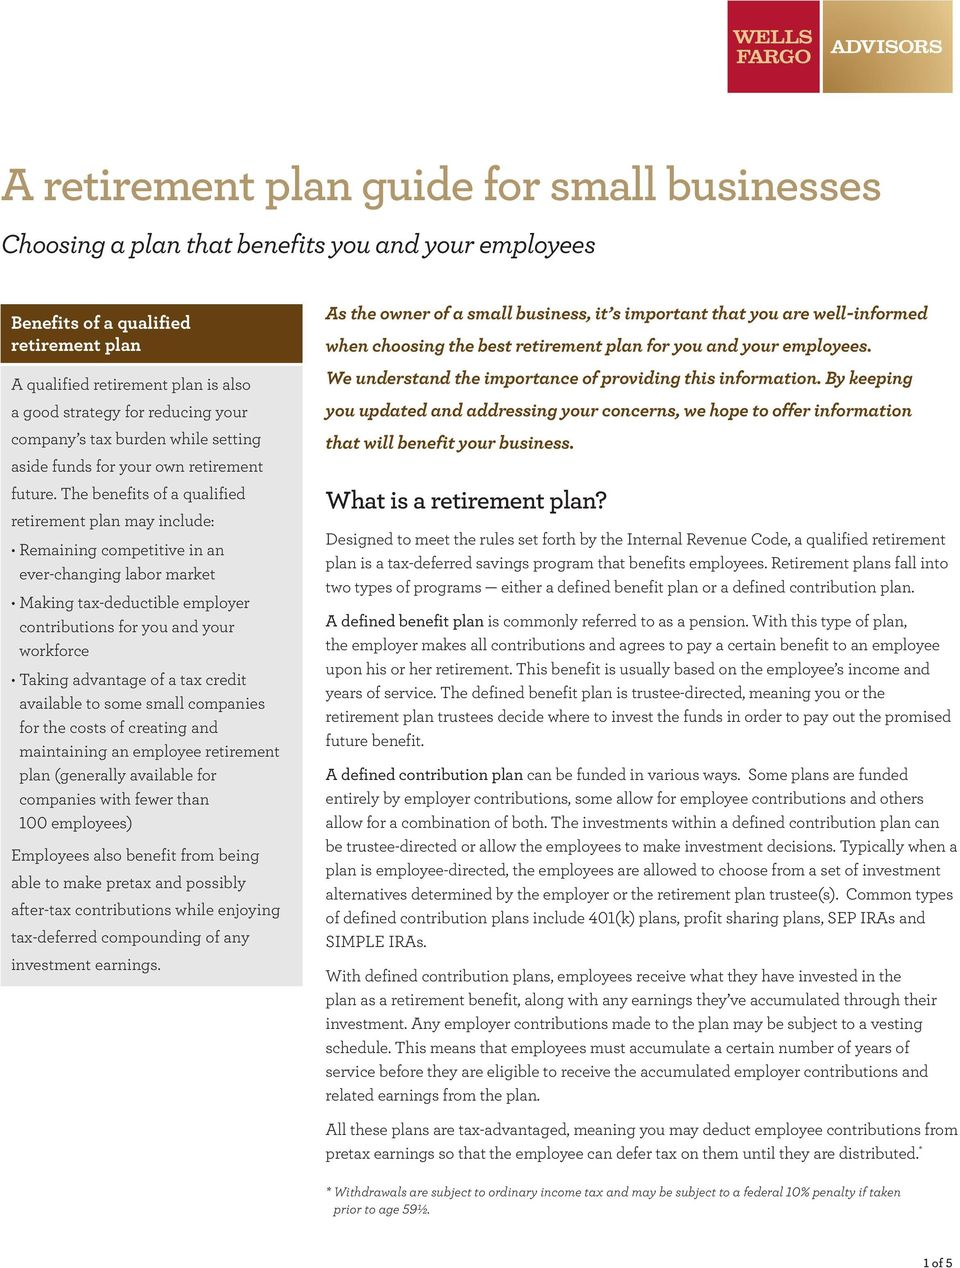 The benefits of a qualified retirement plan may include: Remaining competitive in an ever-changing labor market Making tax-deductible employer contributions for you and your workforce Taking